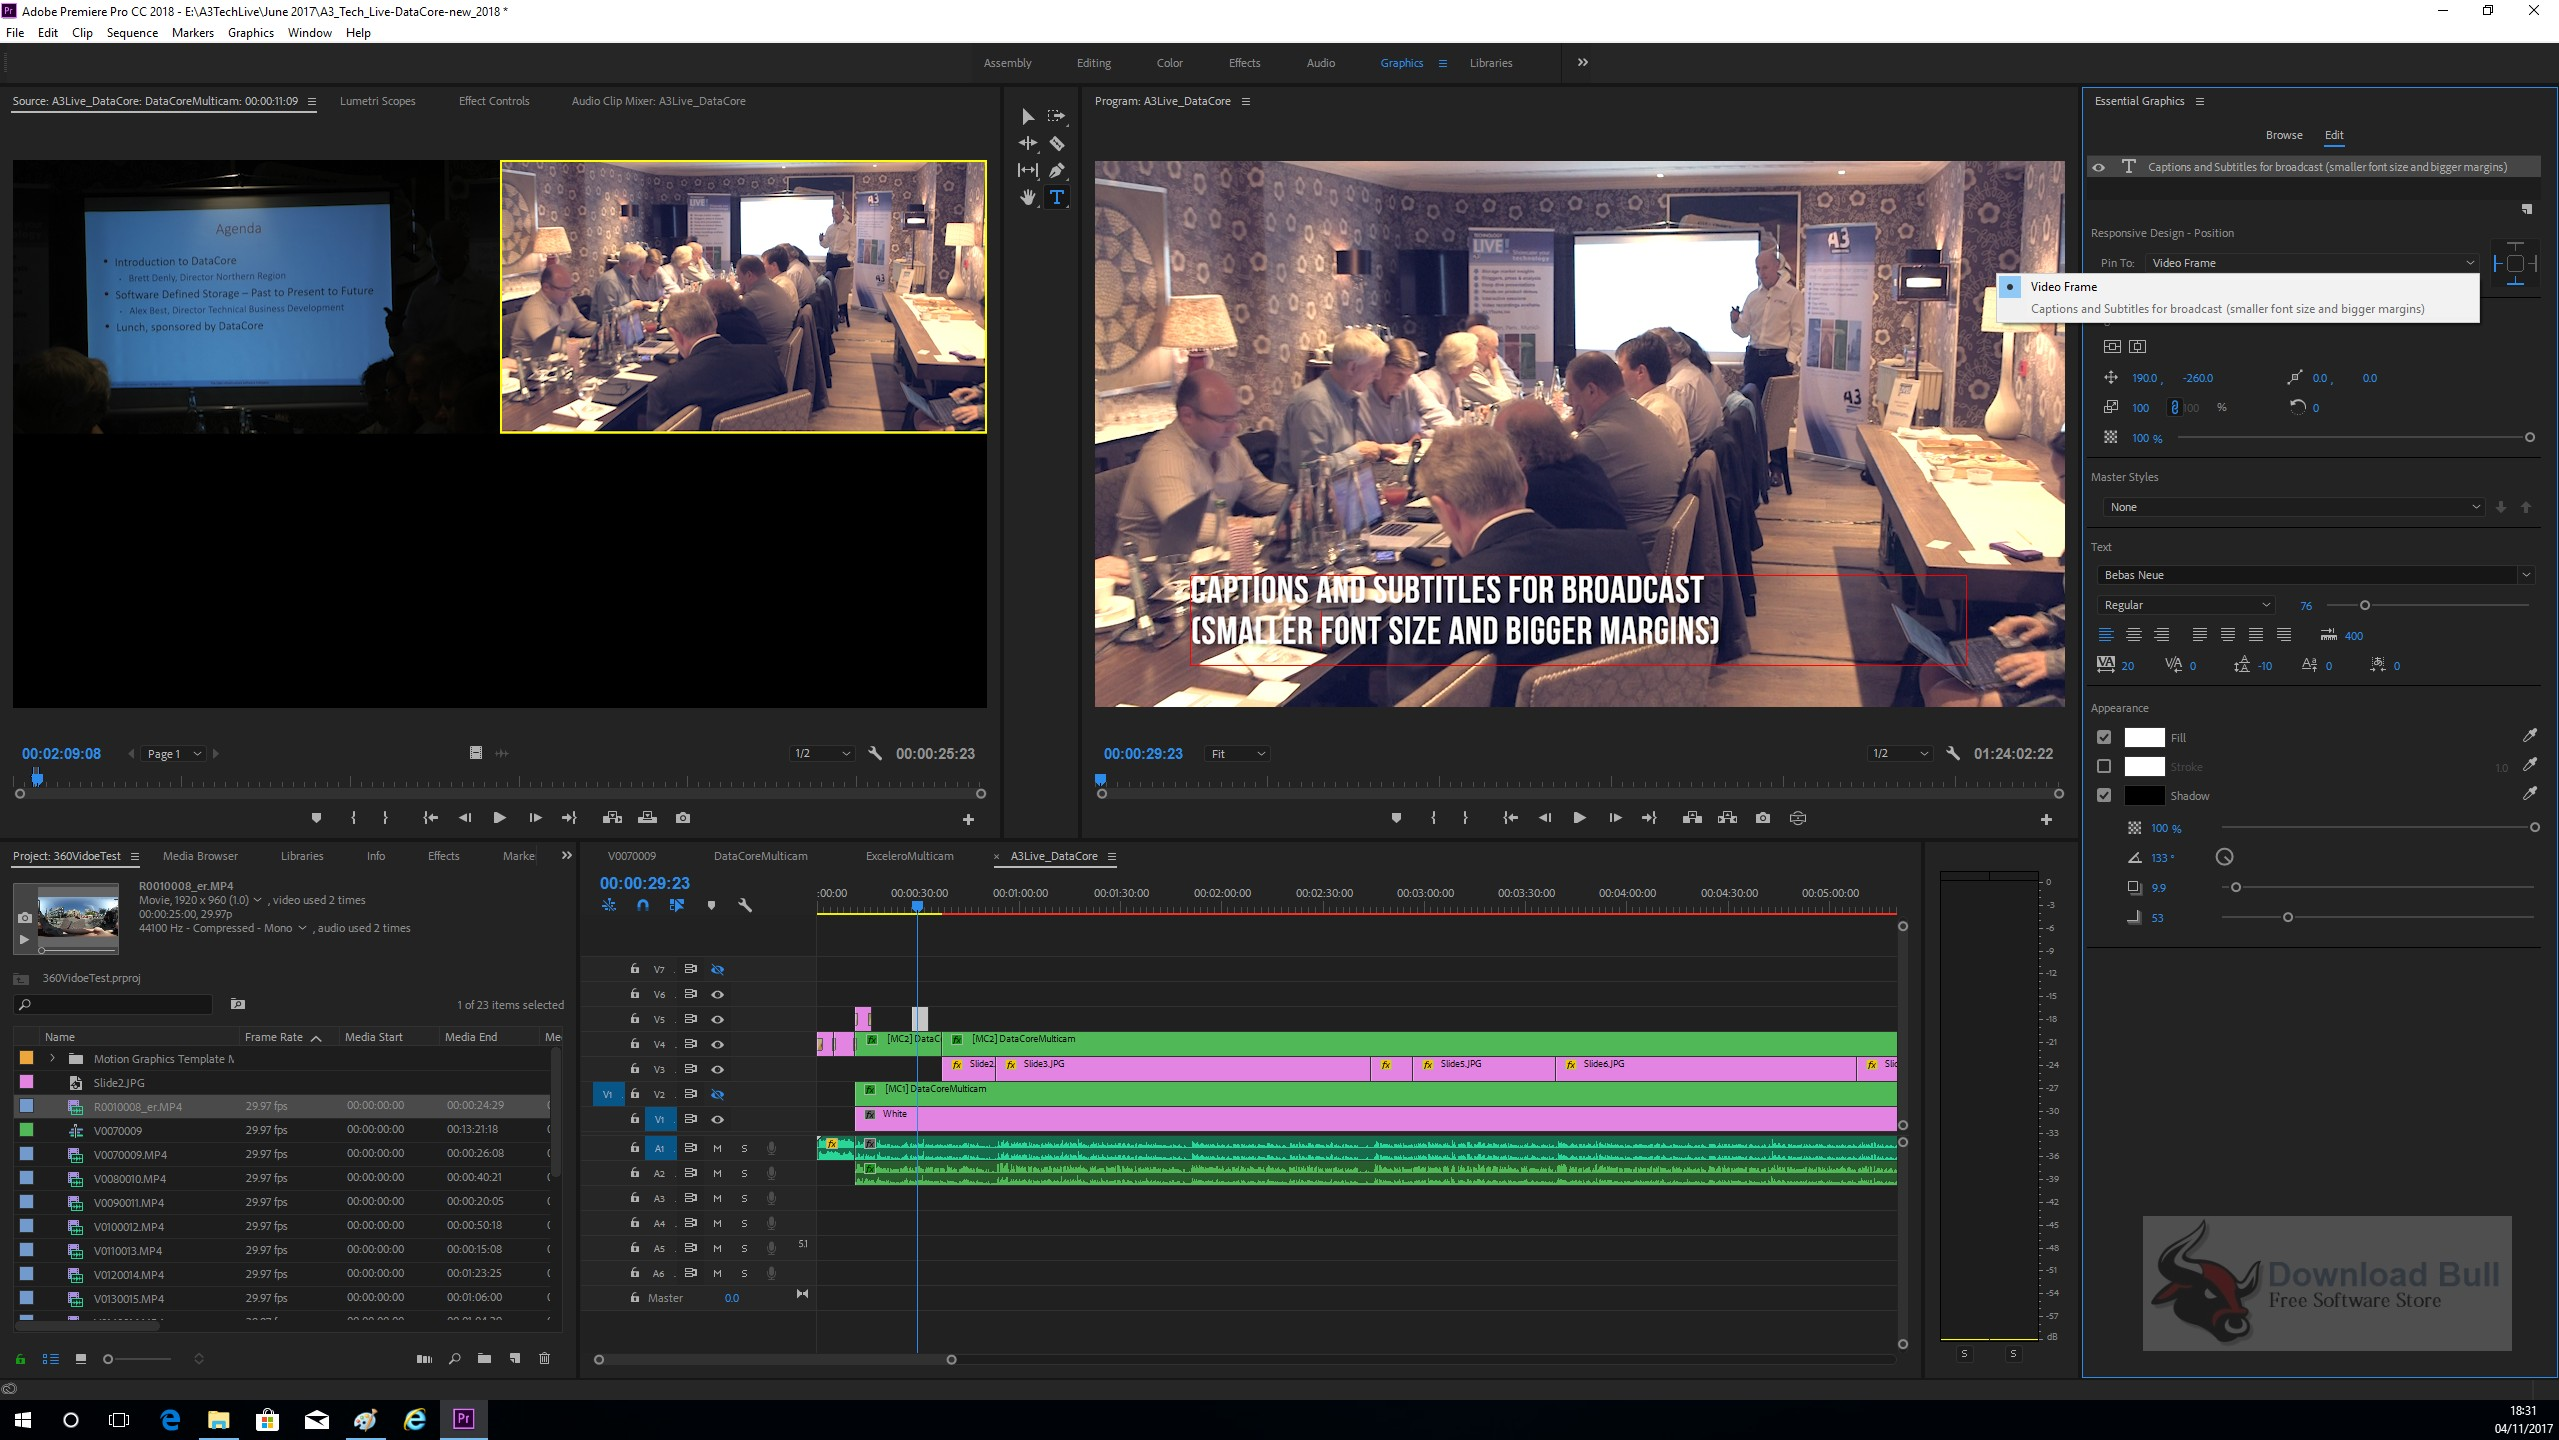 Adobe Premiere Pro Free Download for Windows PC Zip File